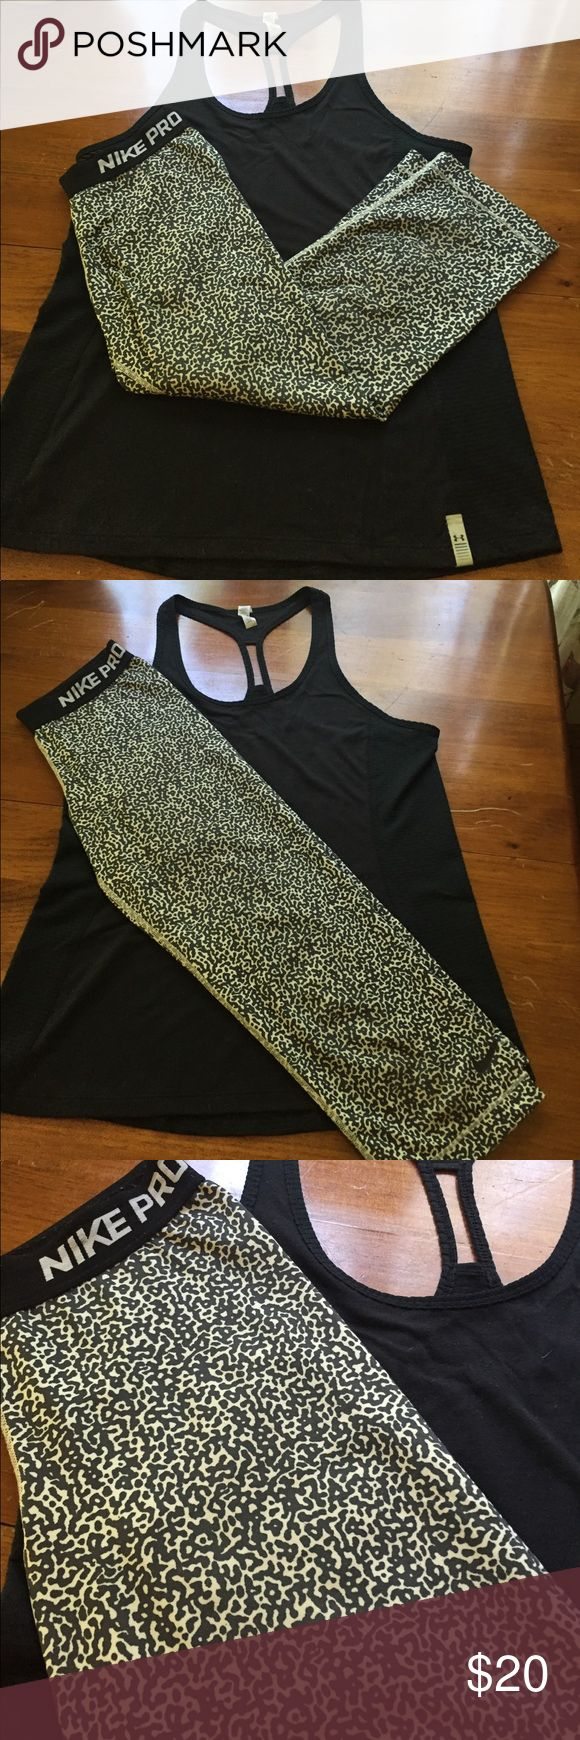 Nike Pro Workout Leggings Black and white leopard print Nike Pro workout capris. Used but good condition. The matching UnderArmour tank pictured is also available in my closet :) Nike Pants Track Pants & Joggers